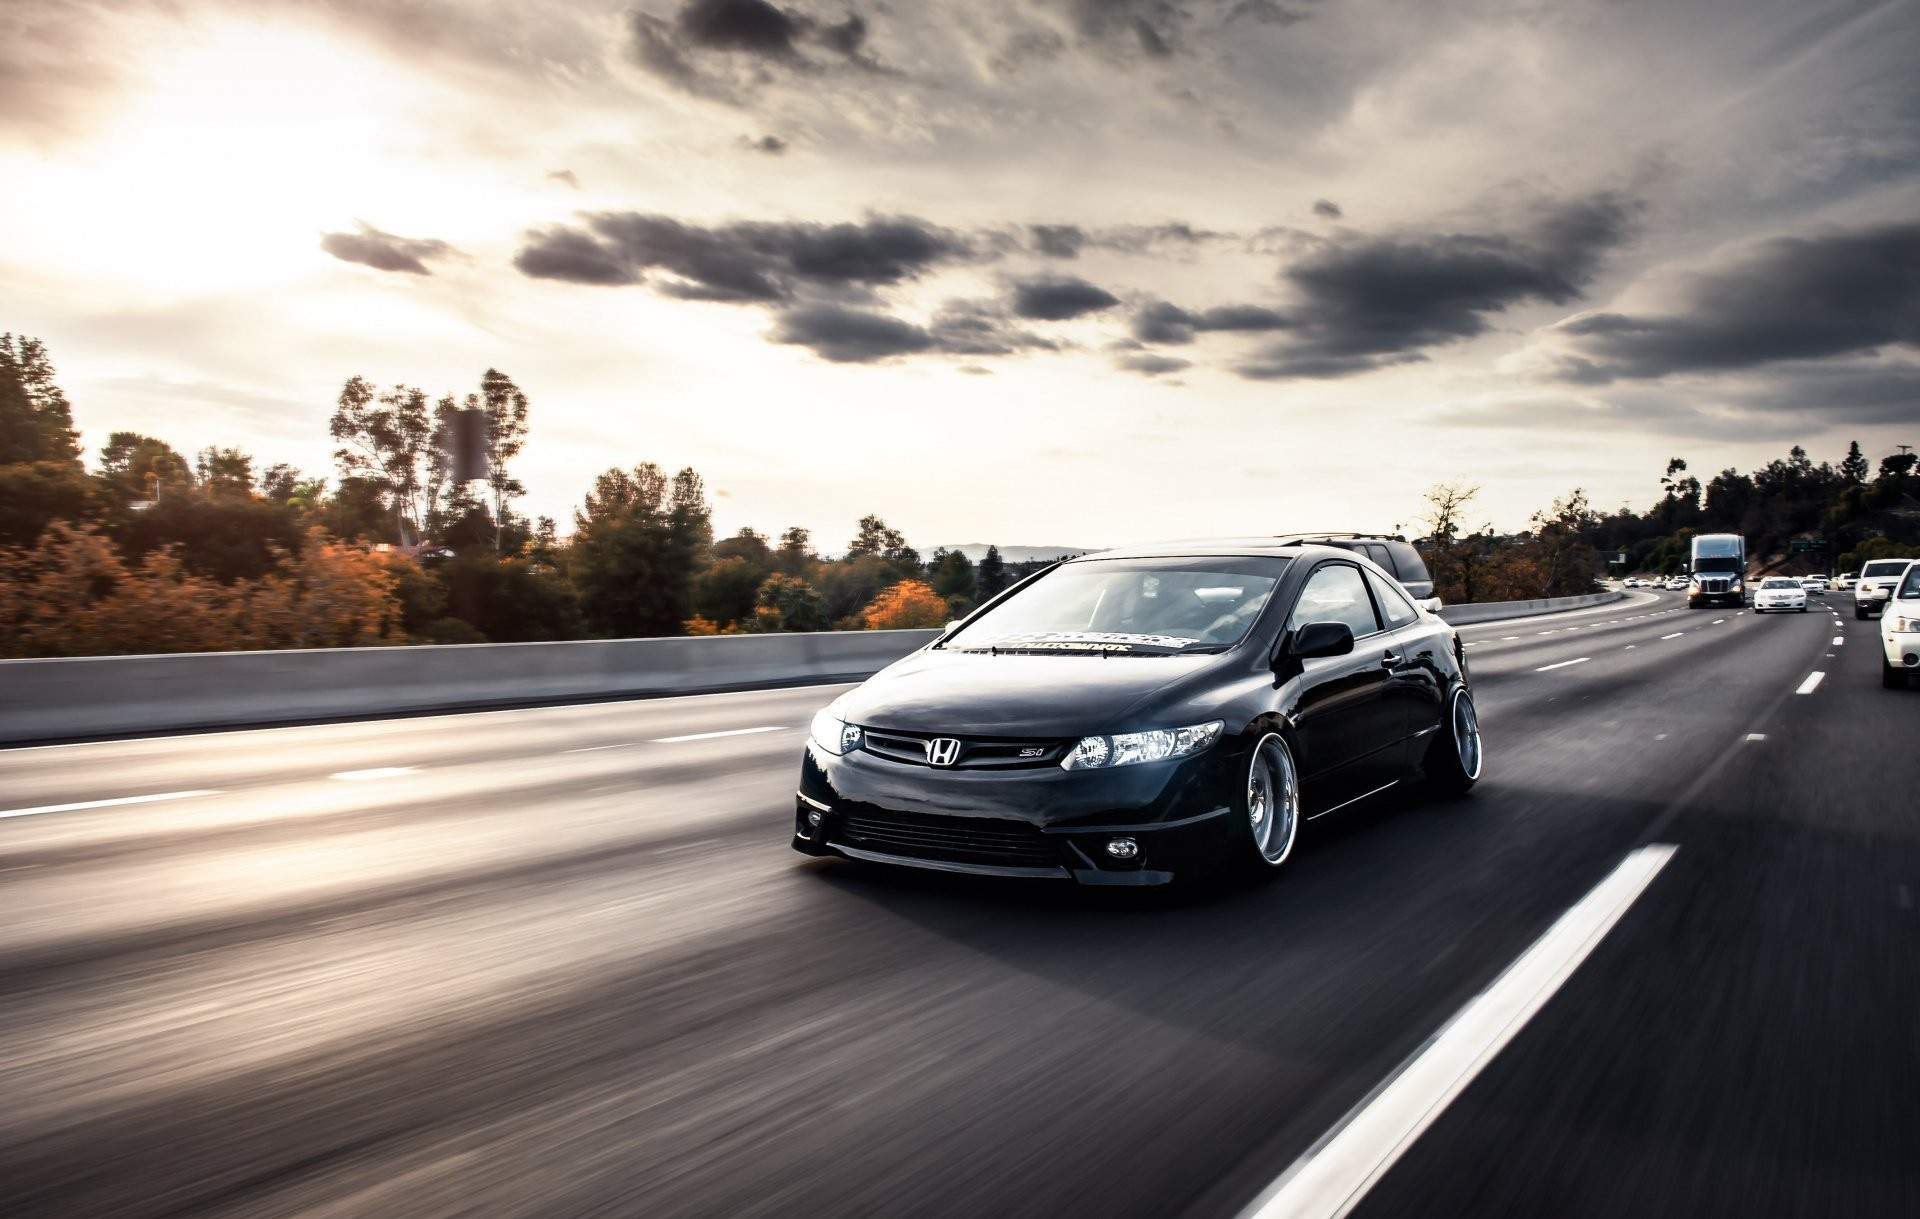 honda civic si wallpaper (52+ images)